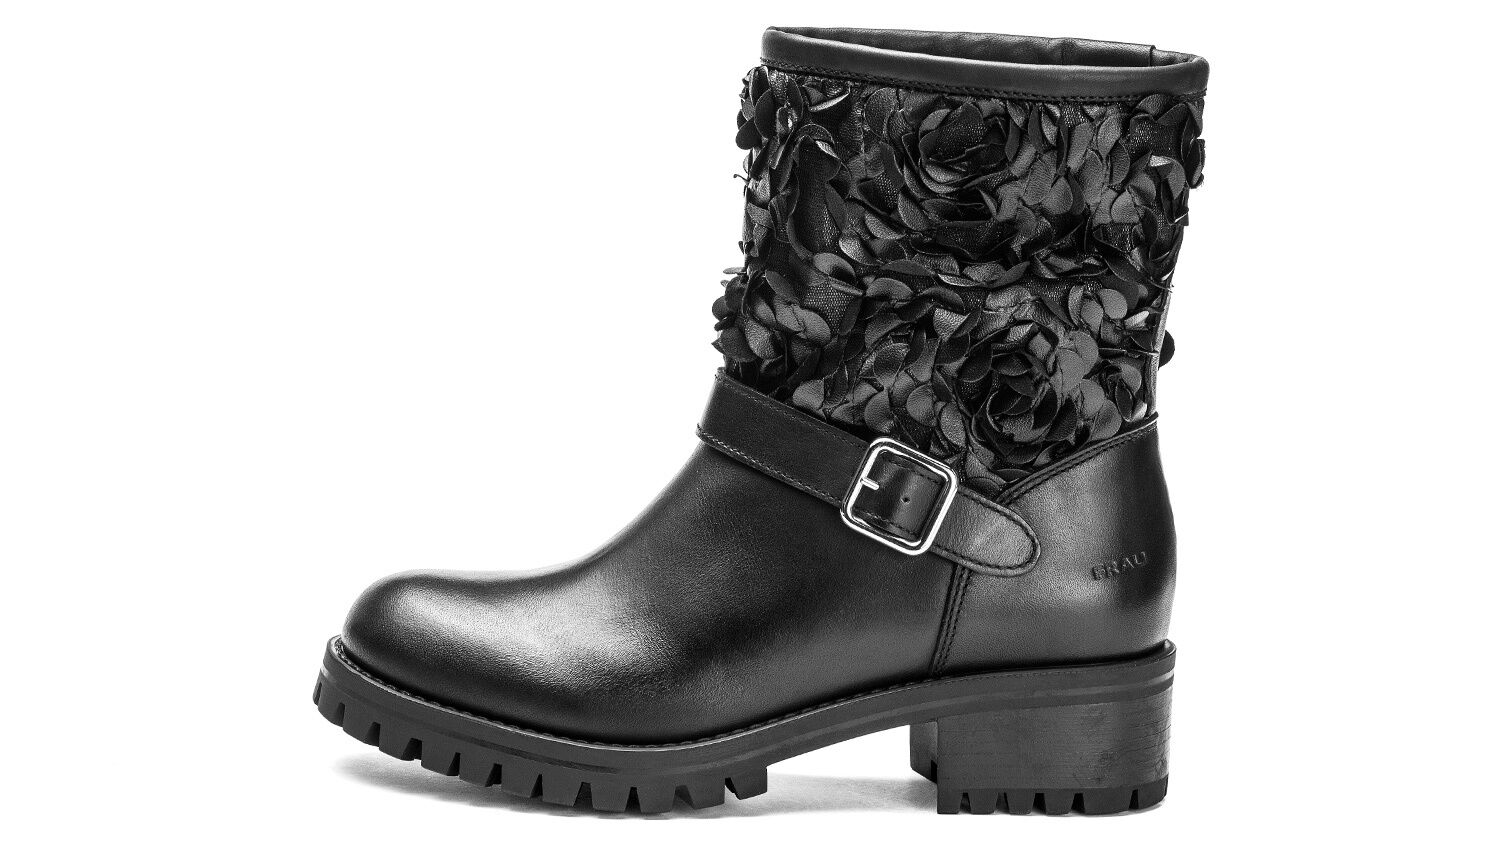 schuhe FRAU Damens TRONCHETTO IN PELLE 85M2 NERO MADE IN ITALY BOOTS